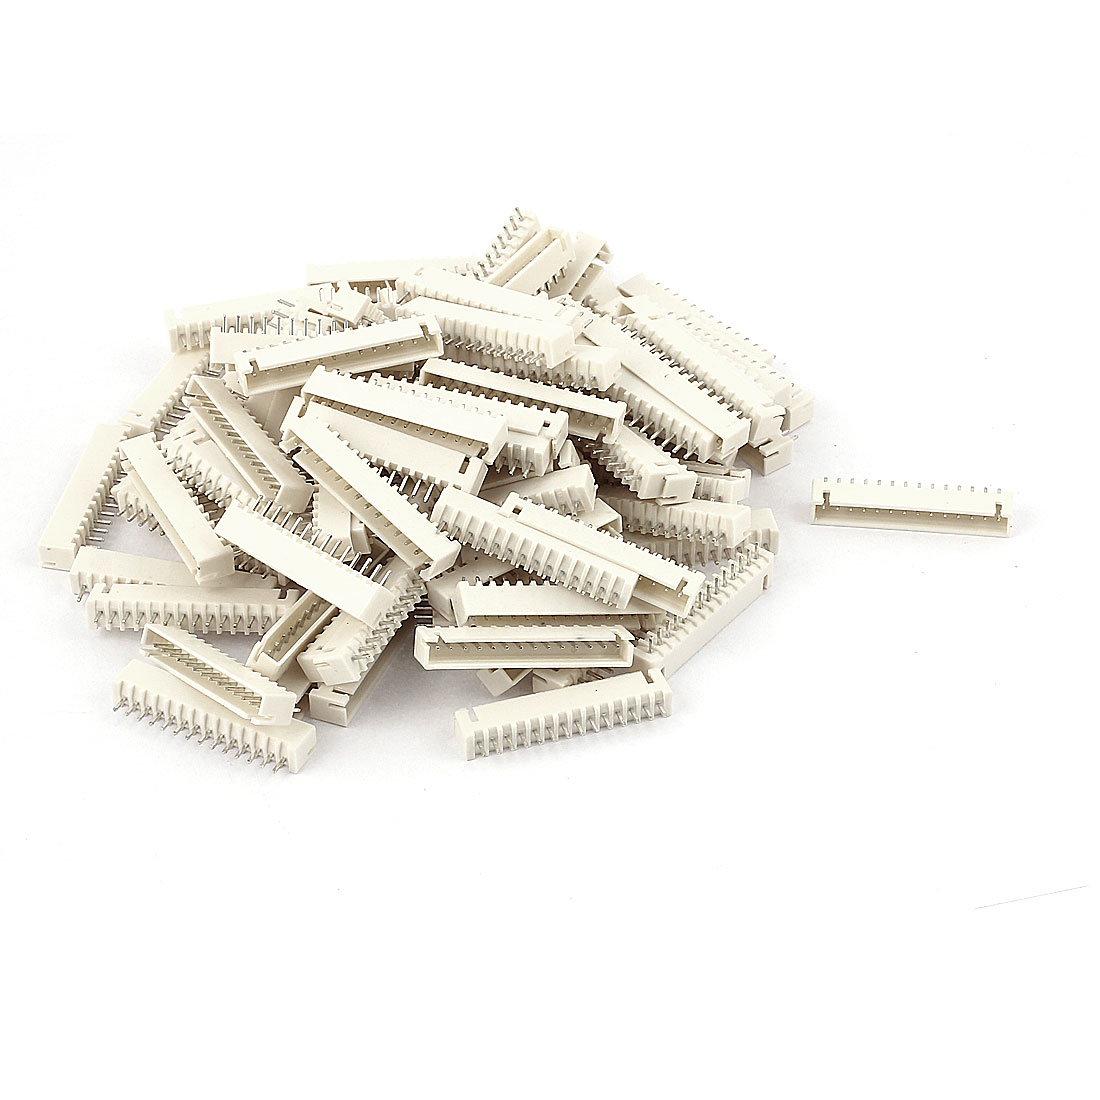 100pcs 2.54mm Pitch Male 14 Pins RC Lipo Battery Balance Connector JST XH Header